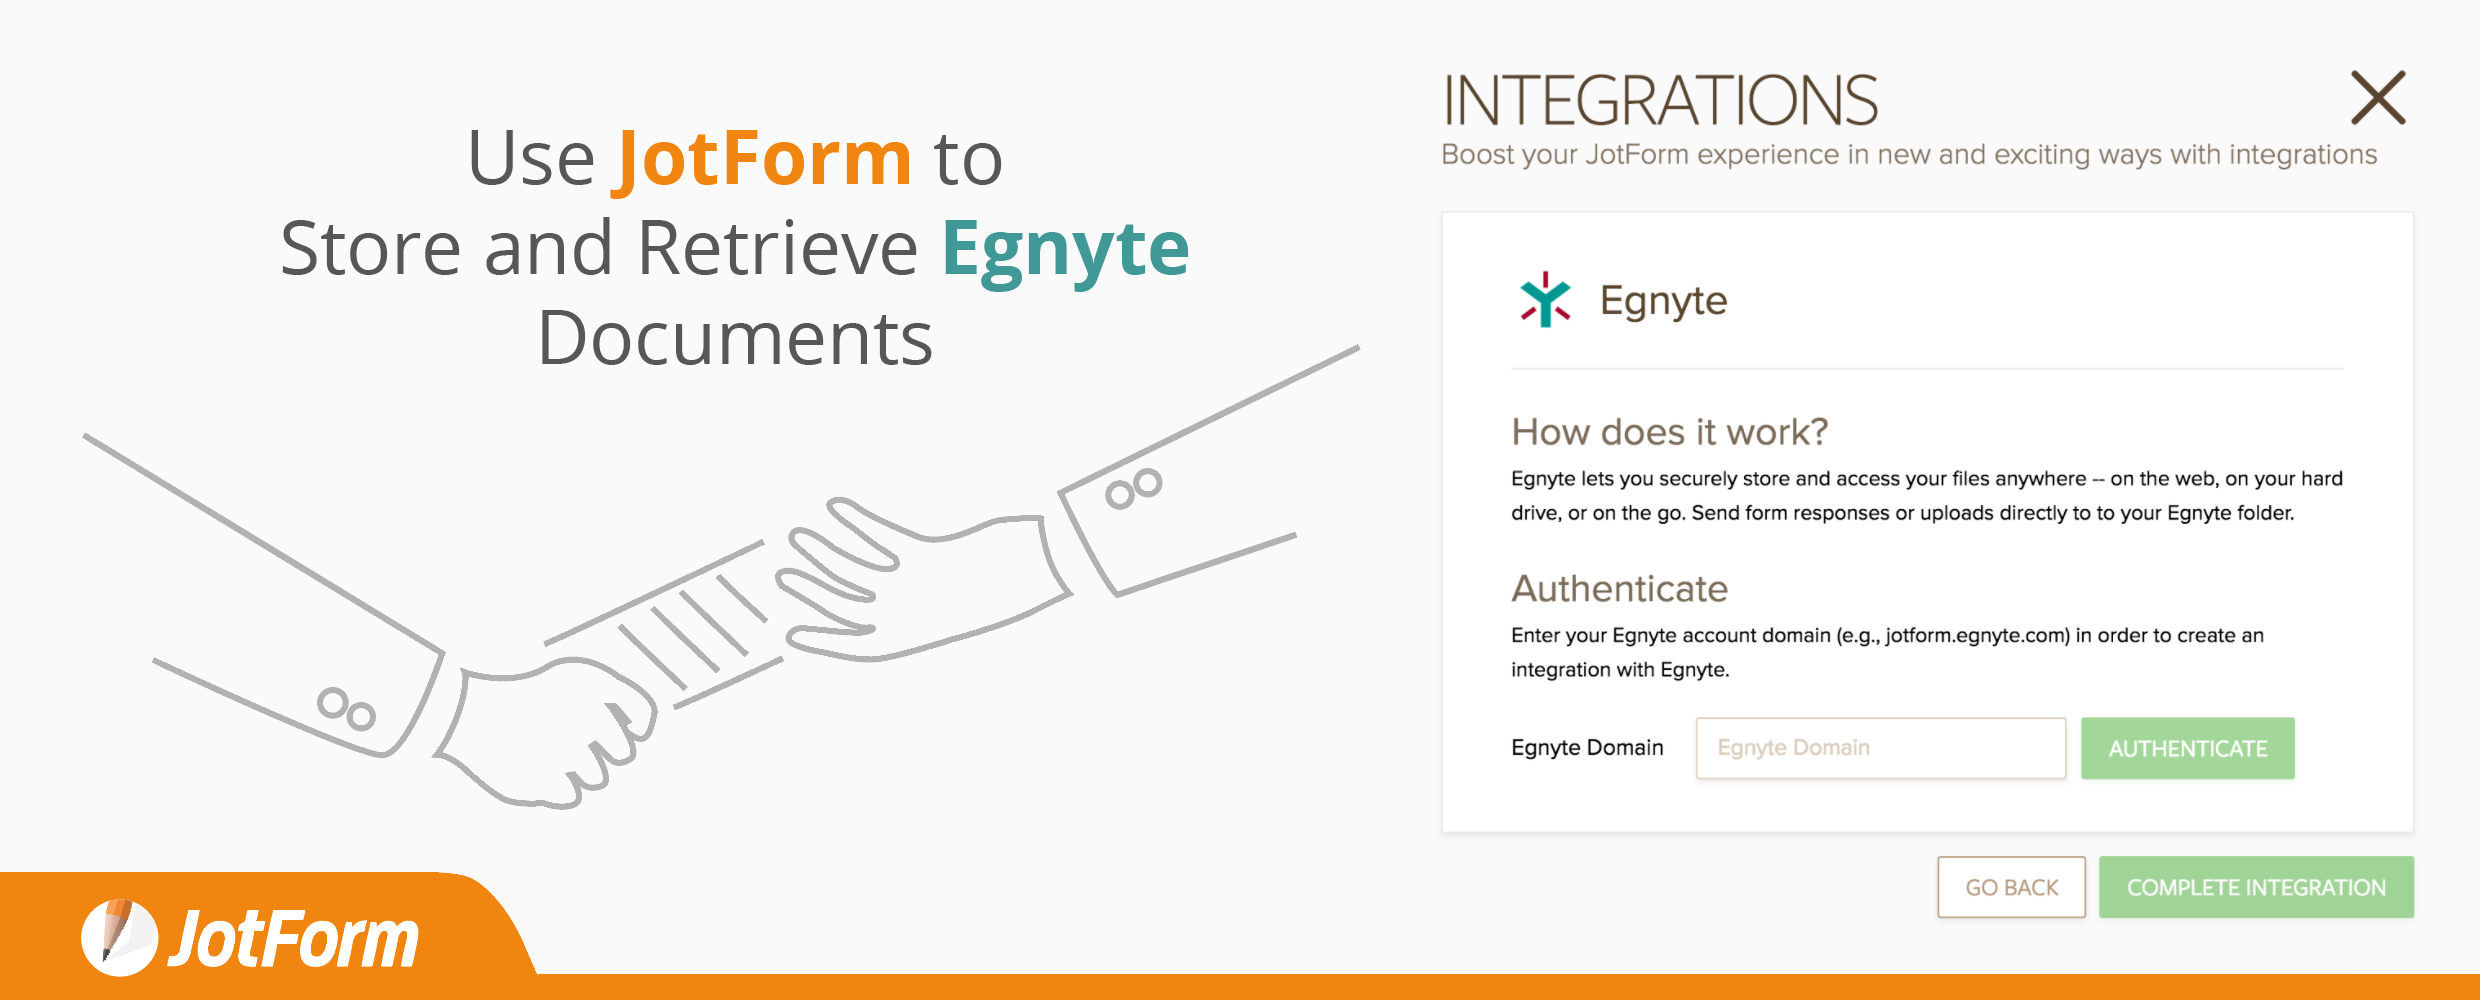 Use JotForm to Store and Retrieve Egnyte Documents